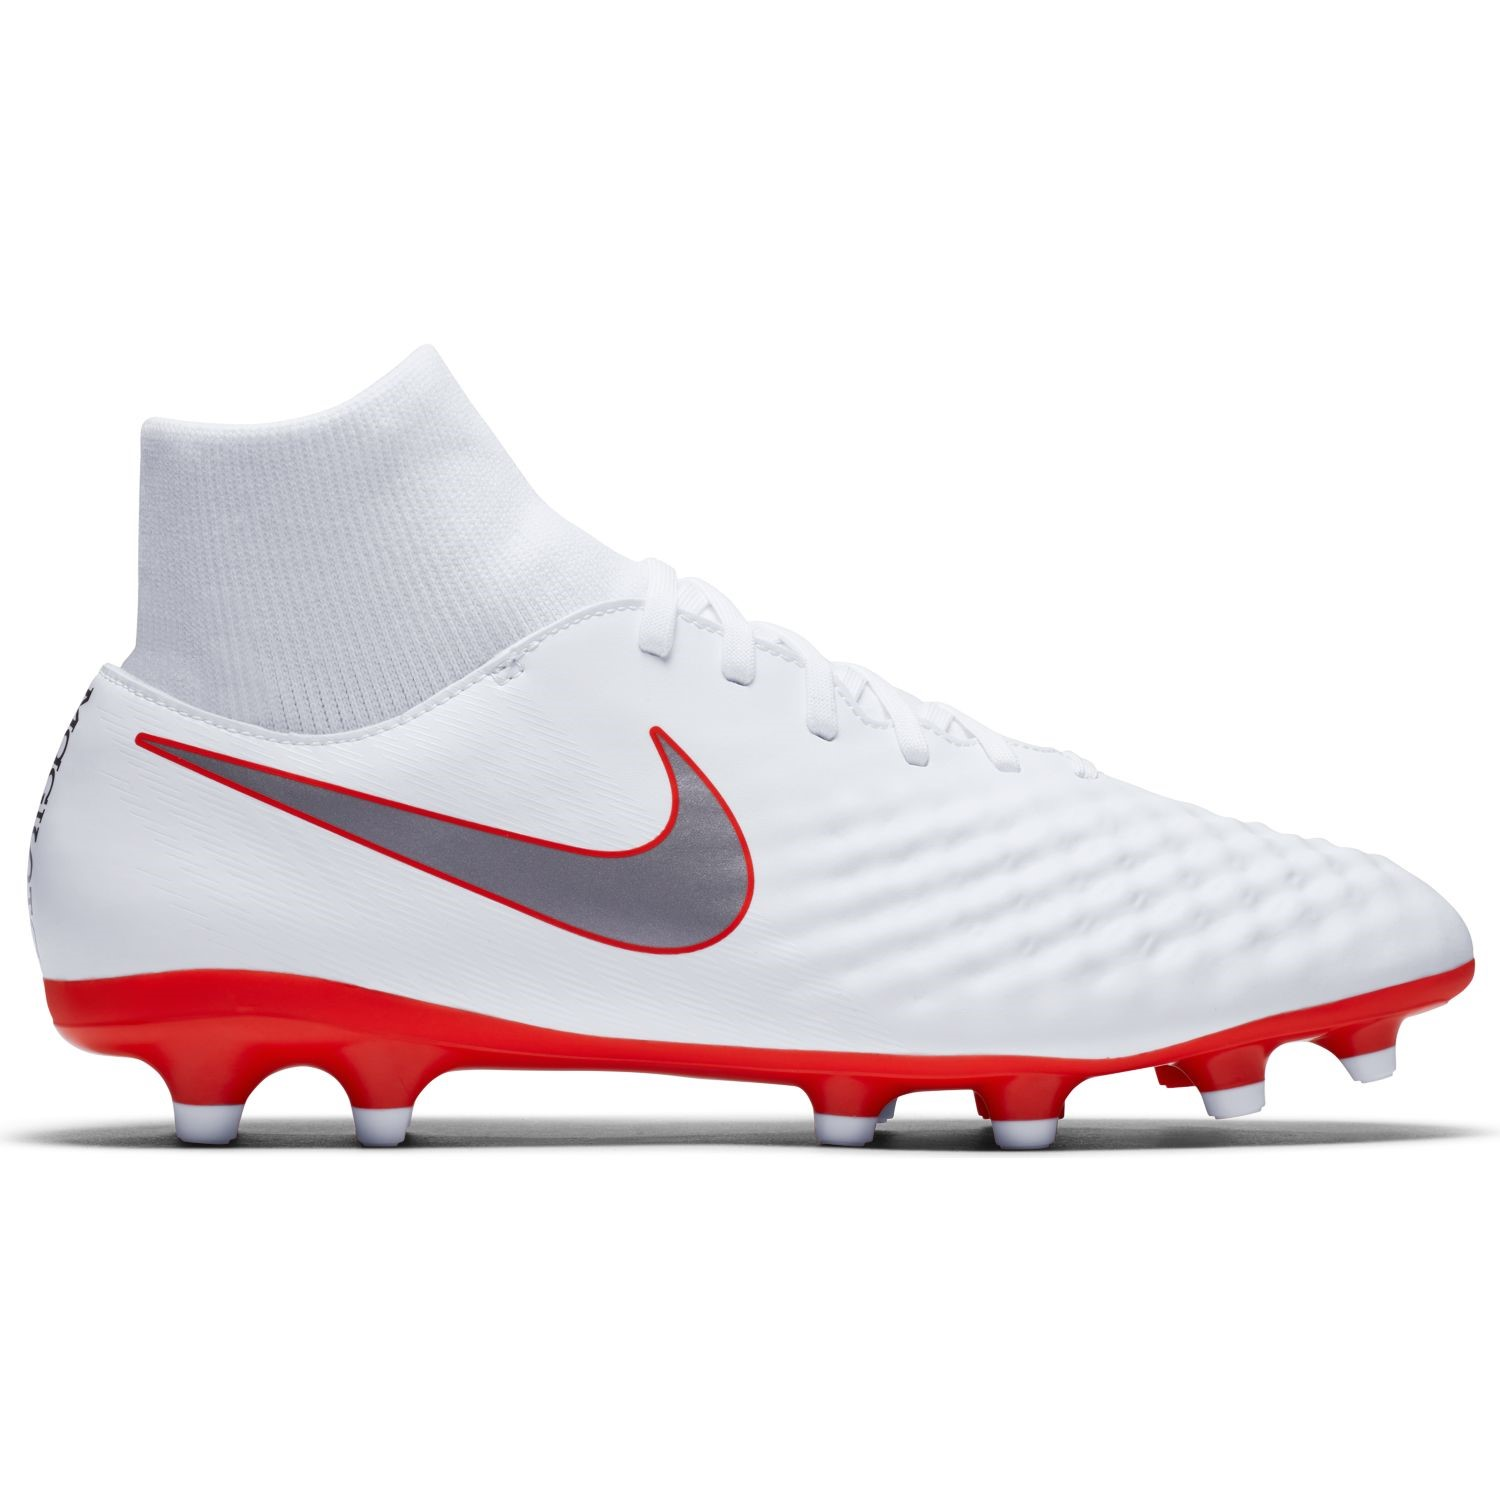 540feed06 Nike Magista Obra II Academy DF FG - Mens Football Boots - White Metallic